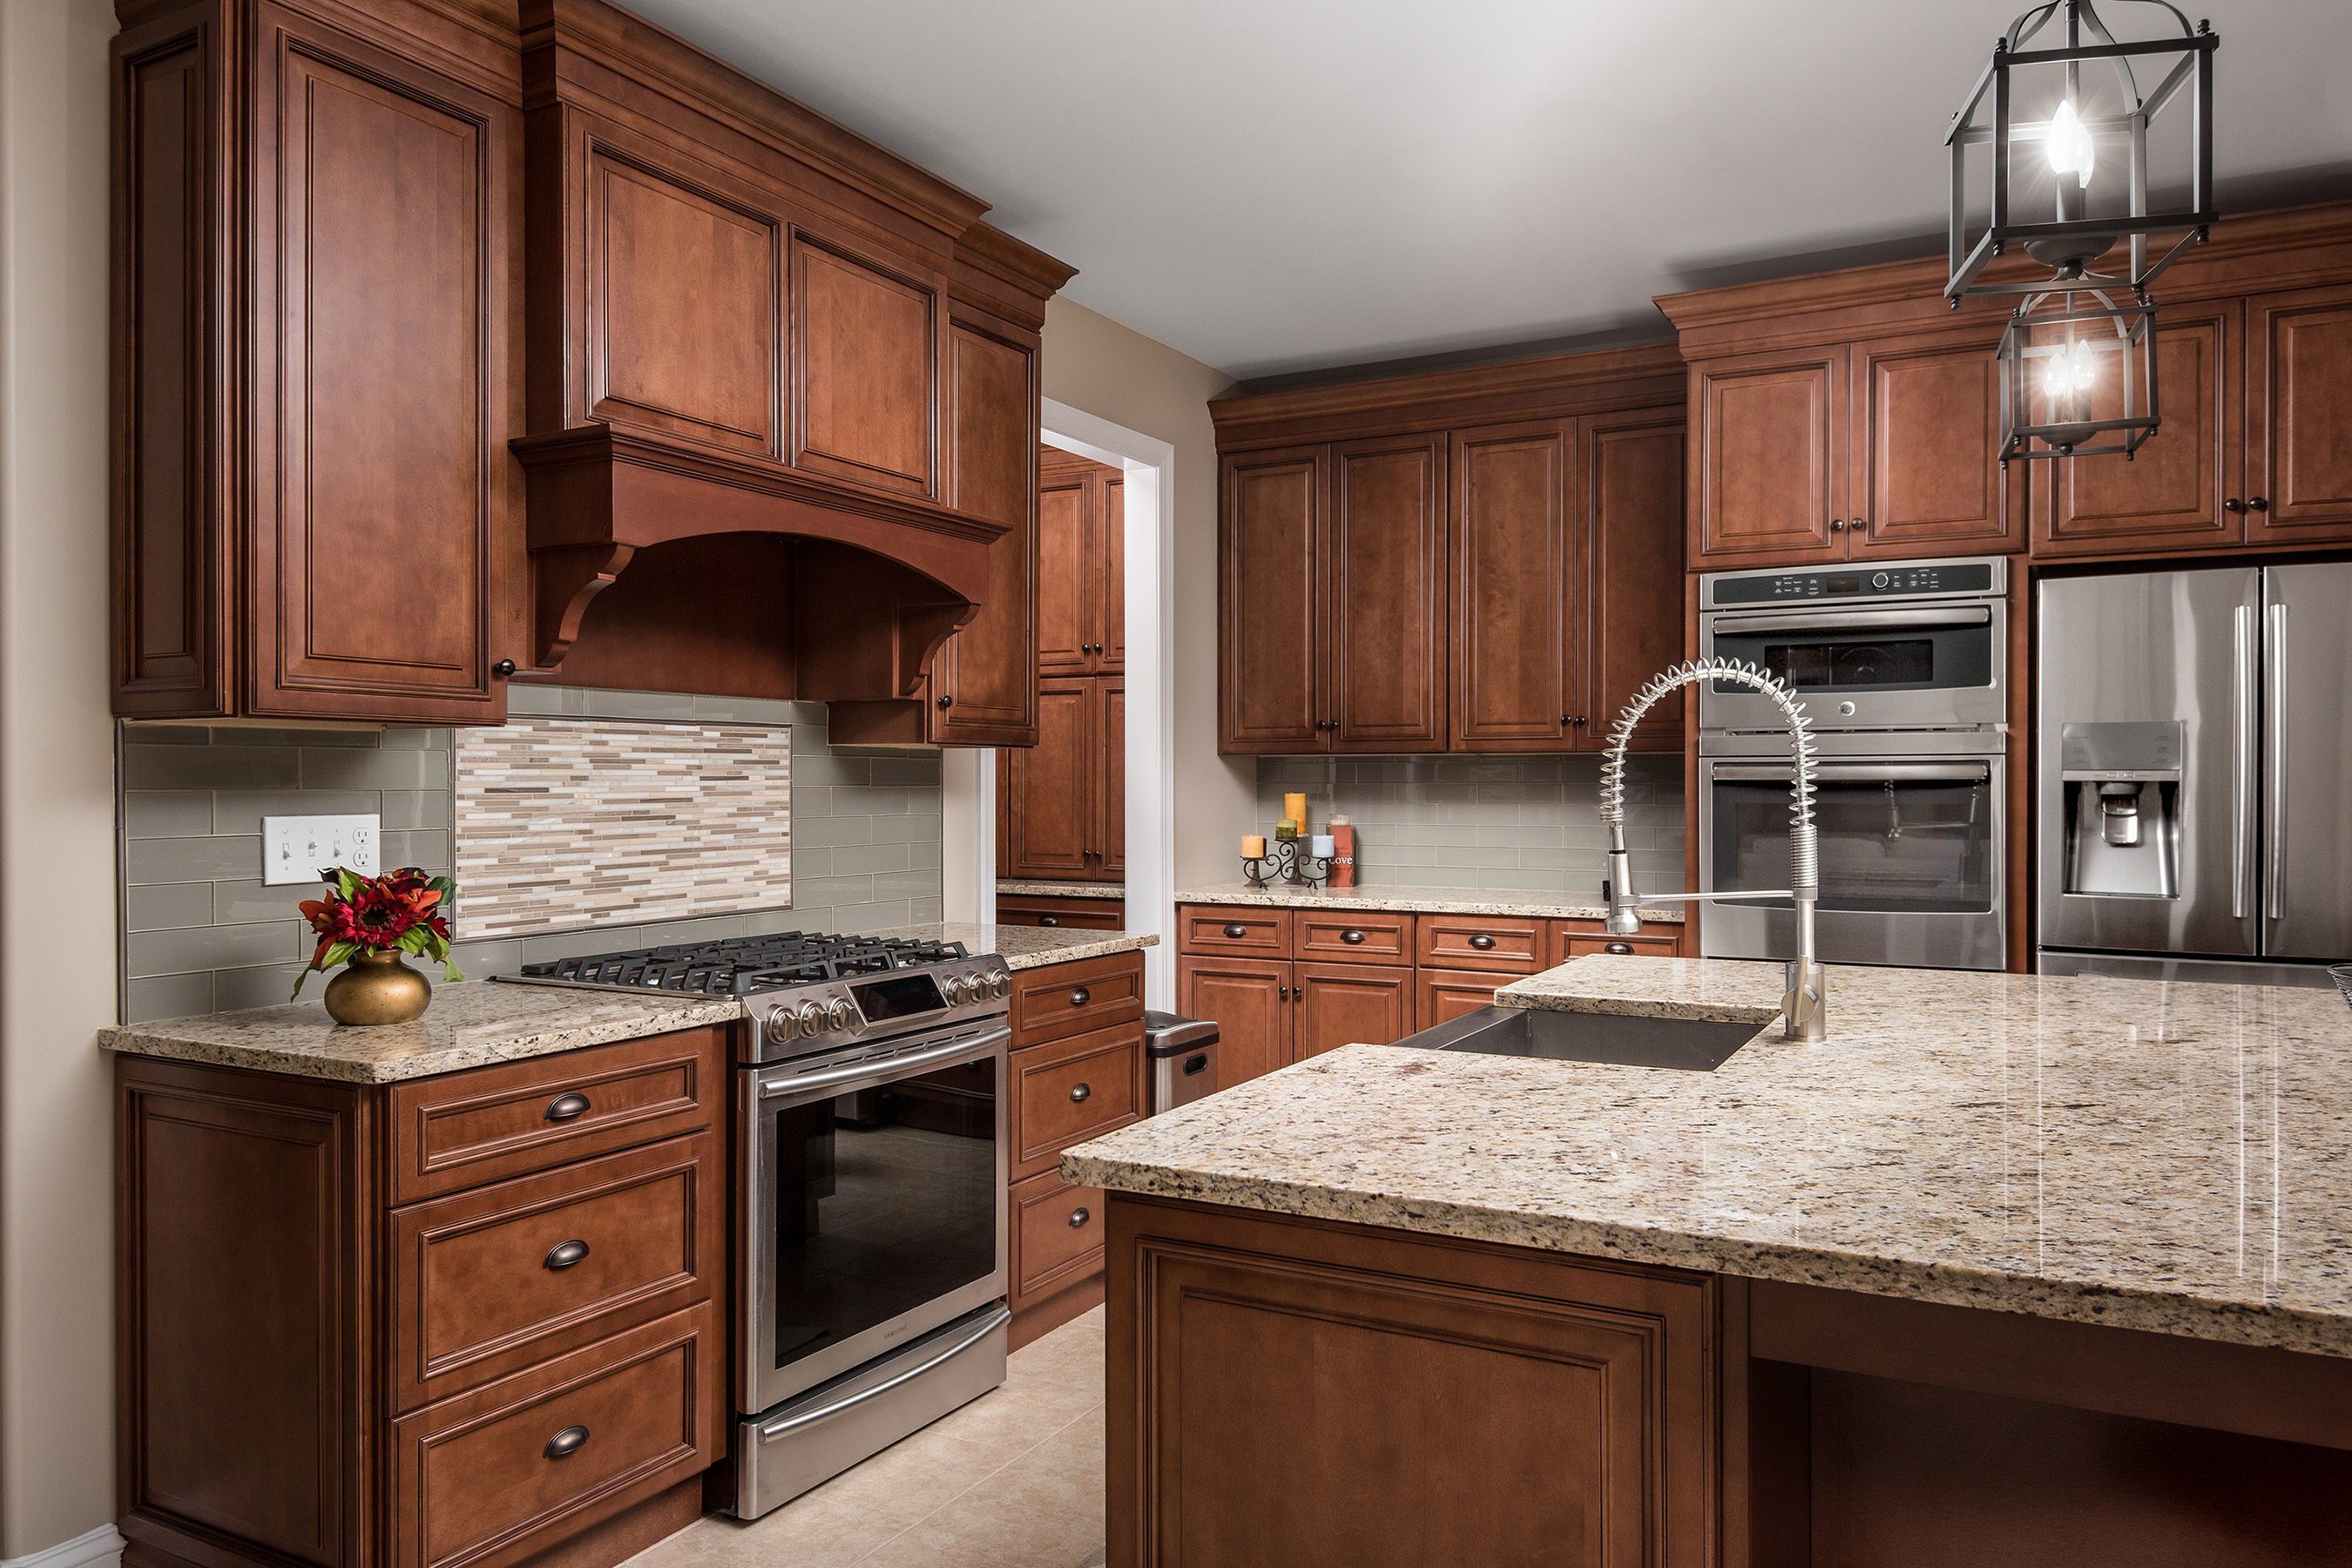 Around The Room Cabinetry Makes This Kitchen A Cozy Niche.